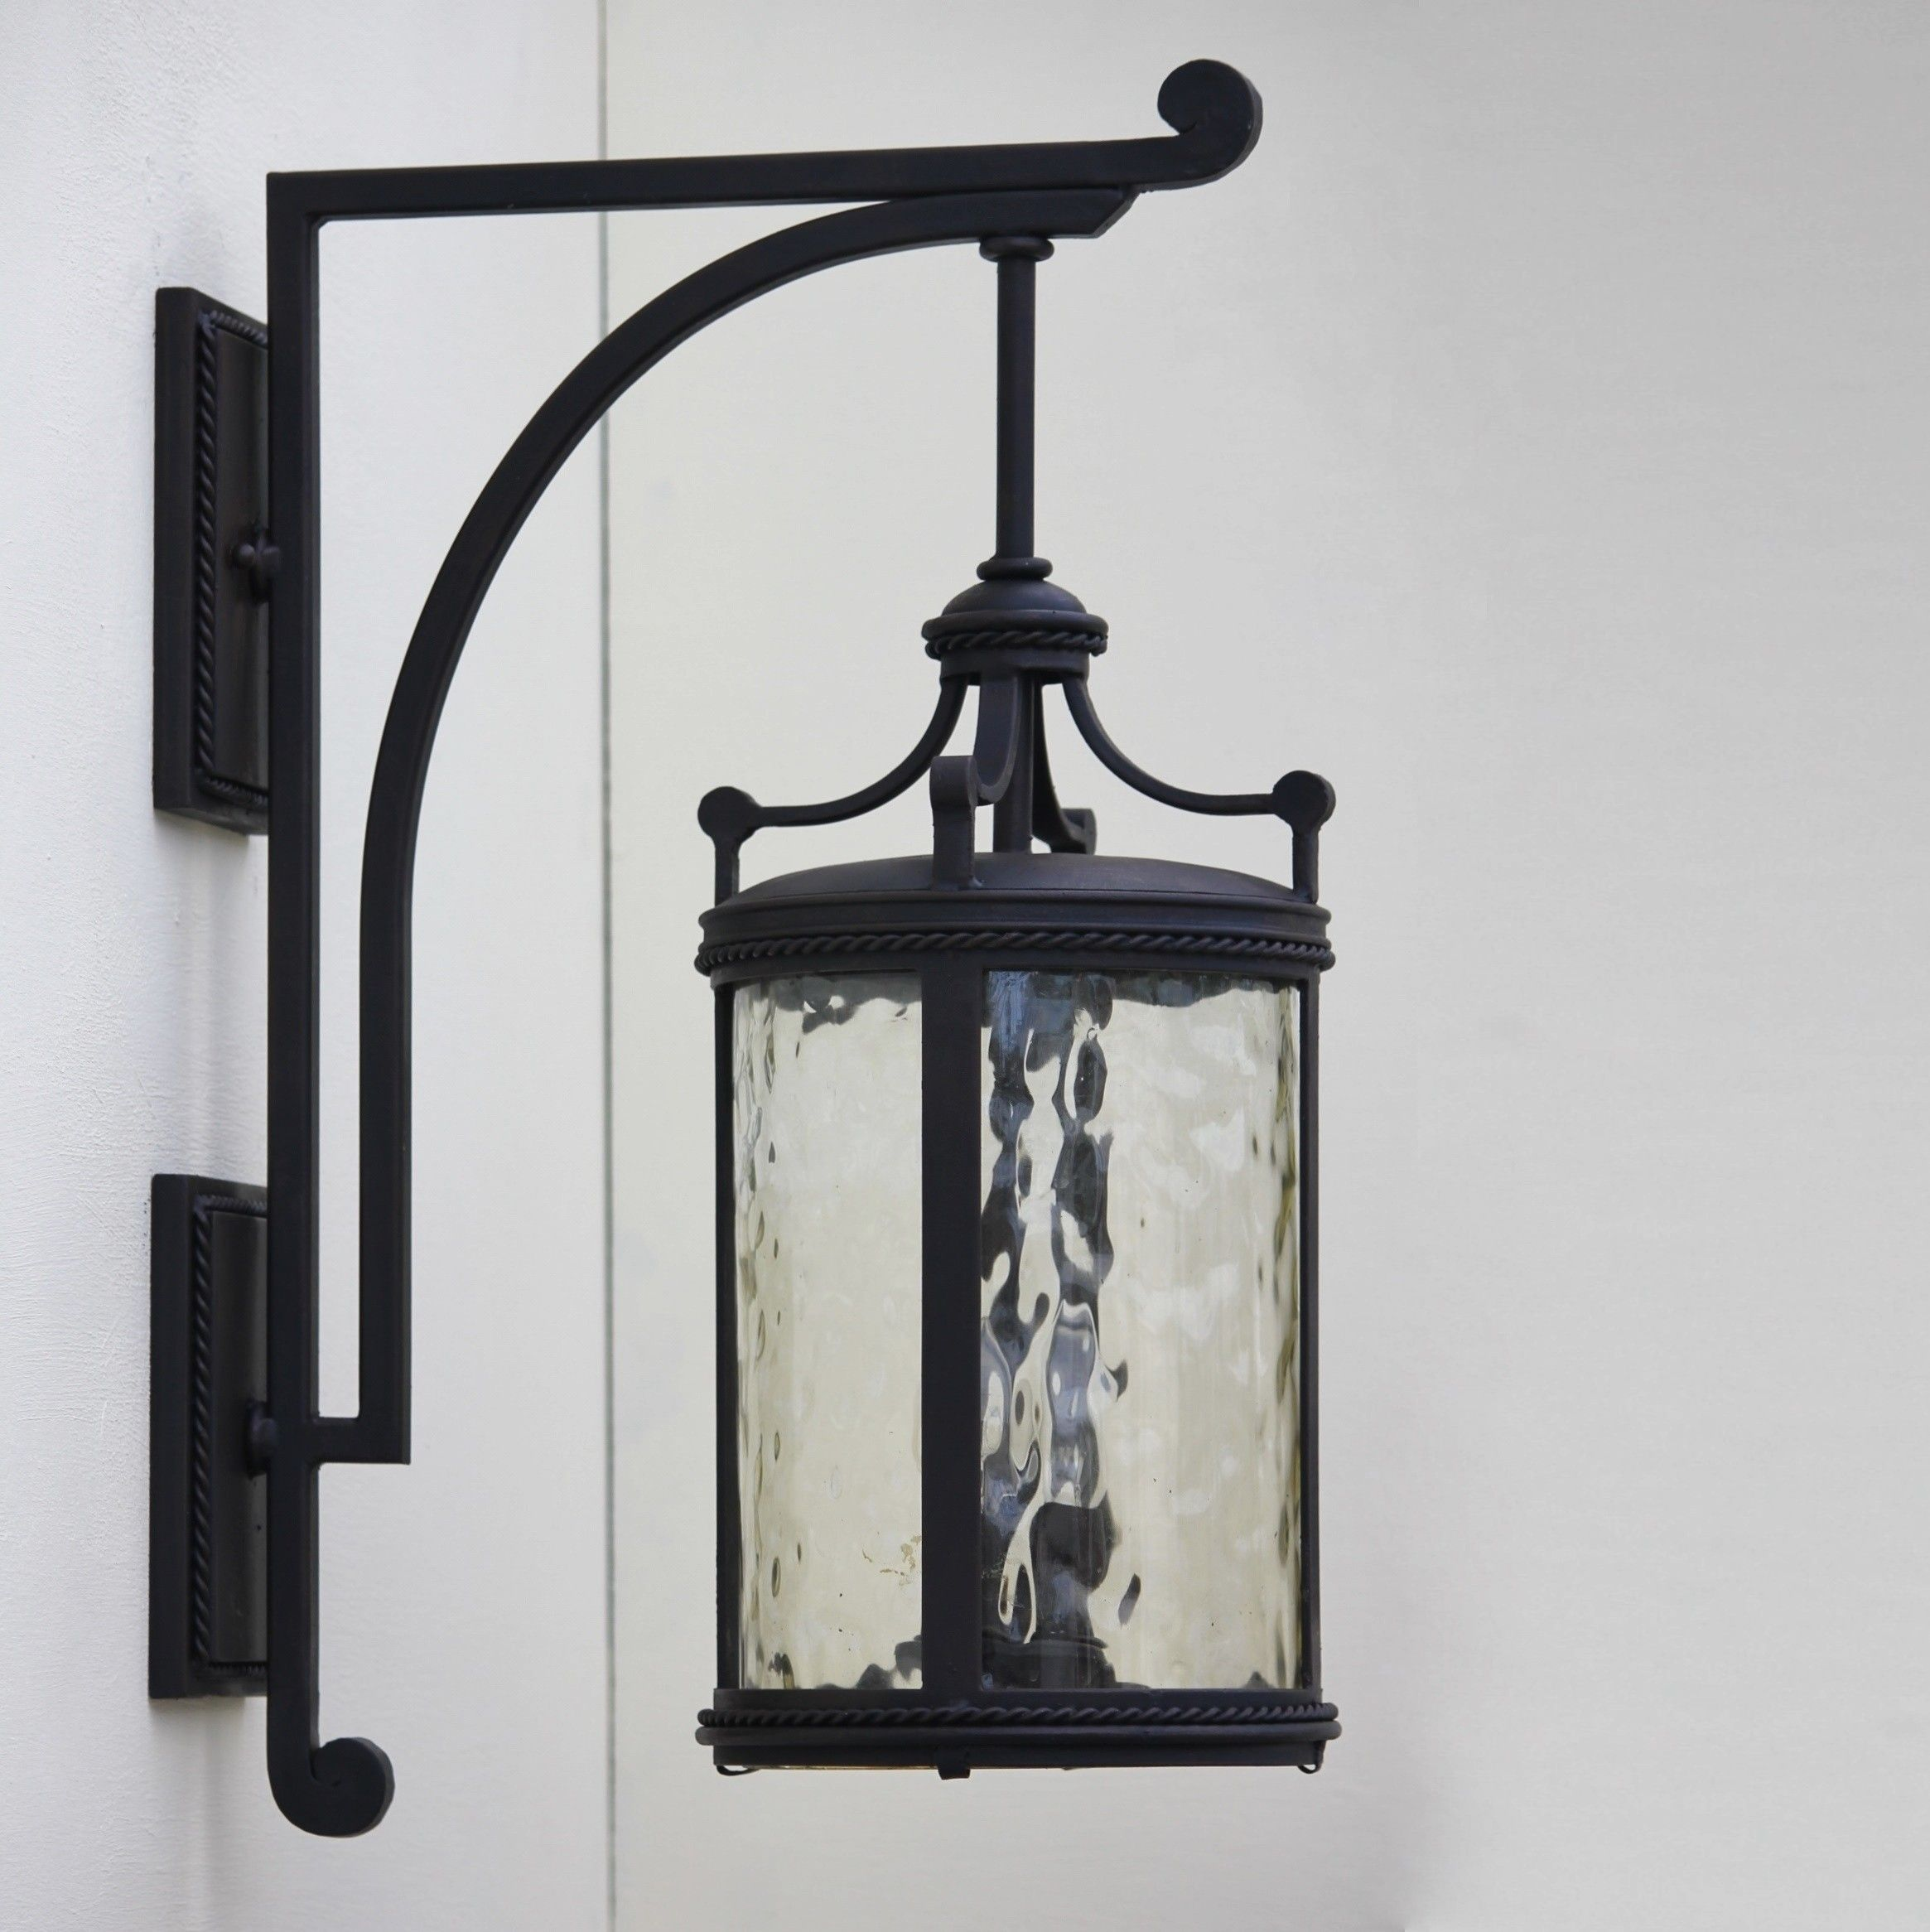 Tuscany Wrought Iron Outdoor Light Fixtures Extravagant Porch And Landscape Ideas Outdoor Light Fixtures Wrought Iron Light Fixtures Iron Lighting